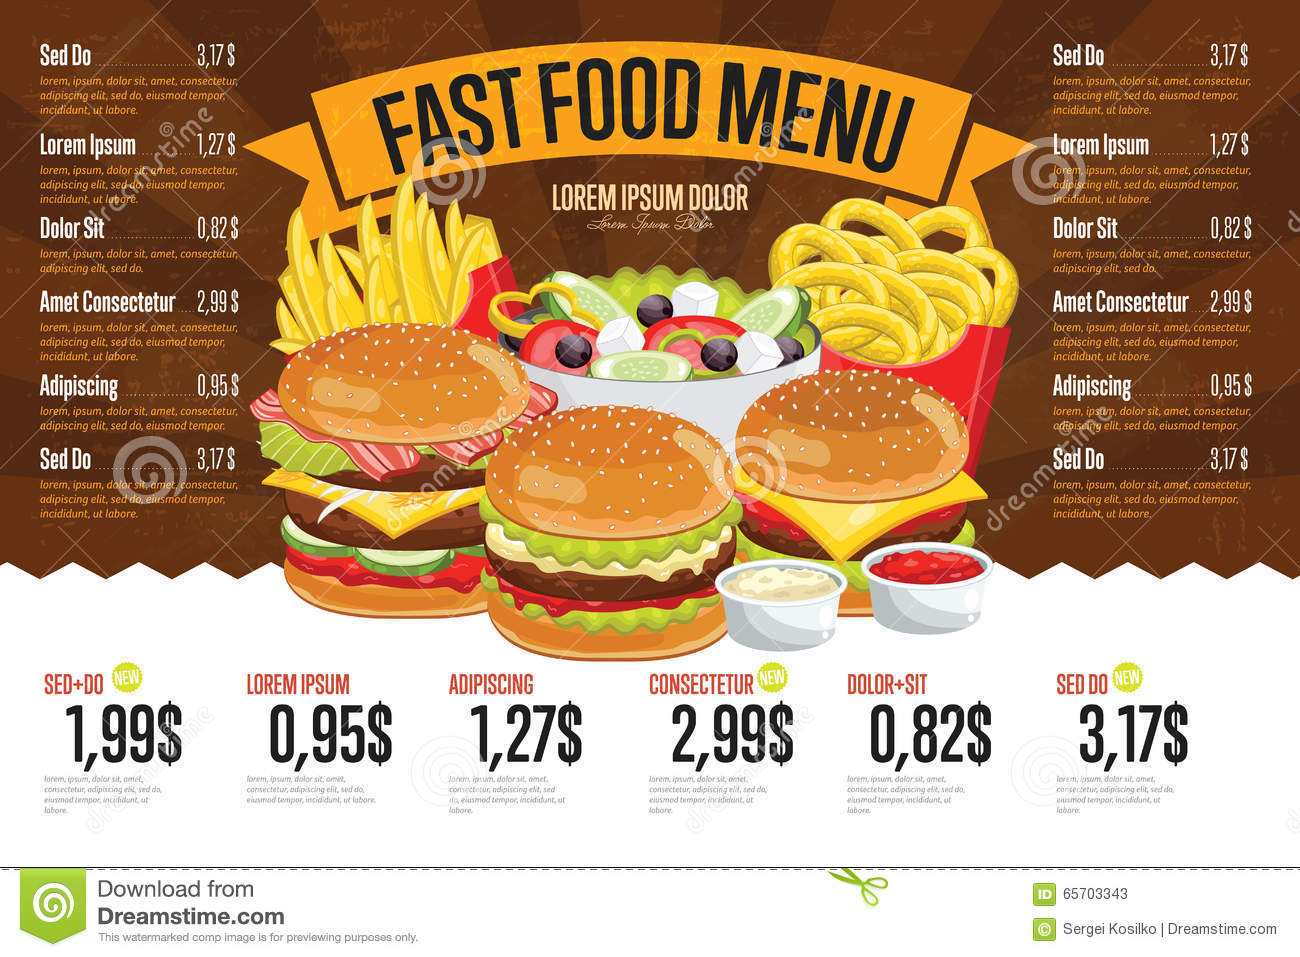 download fast food menu template stock vector illustration of template 65703343